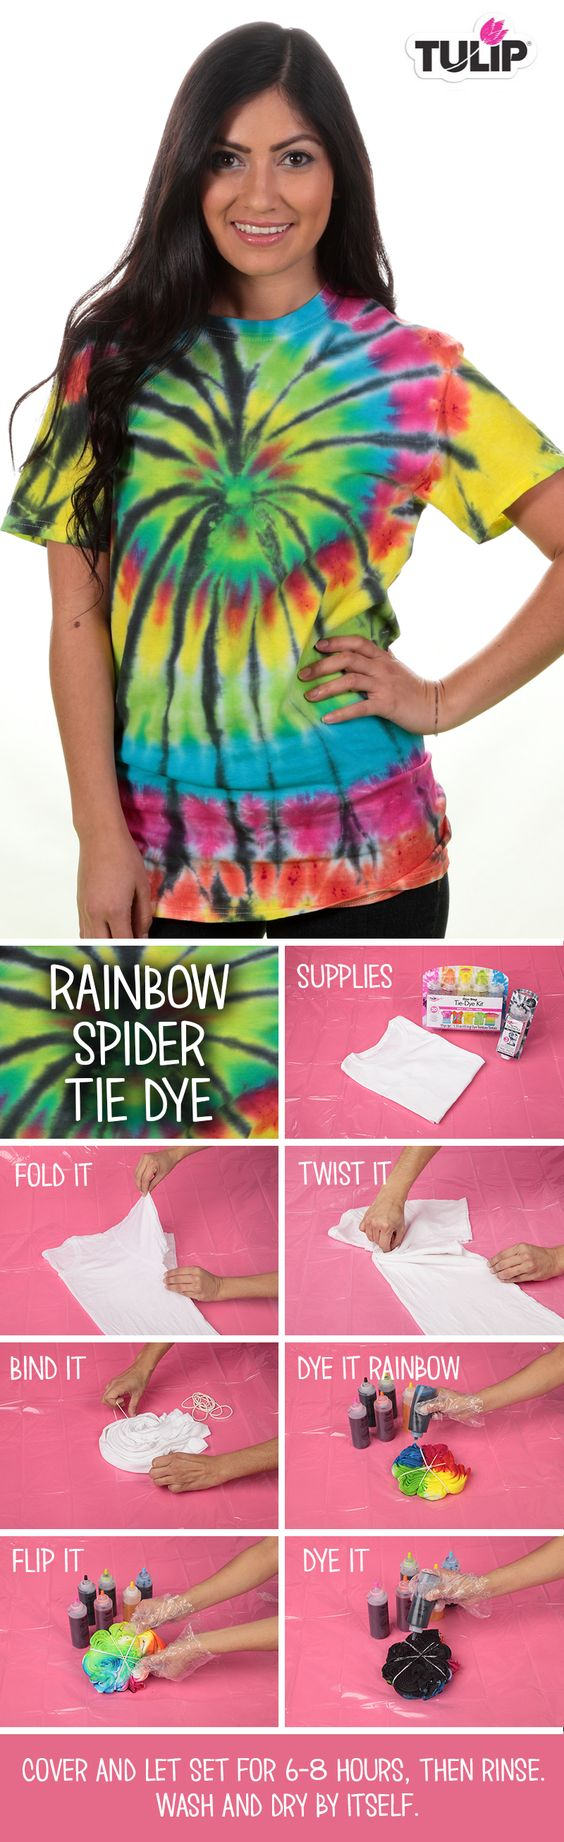 Rainbow Spider DIY: